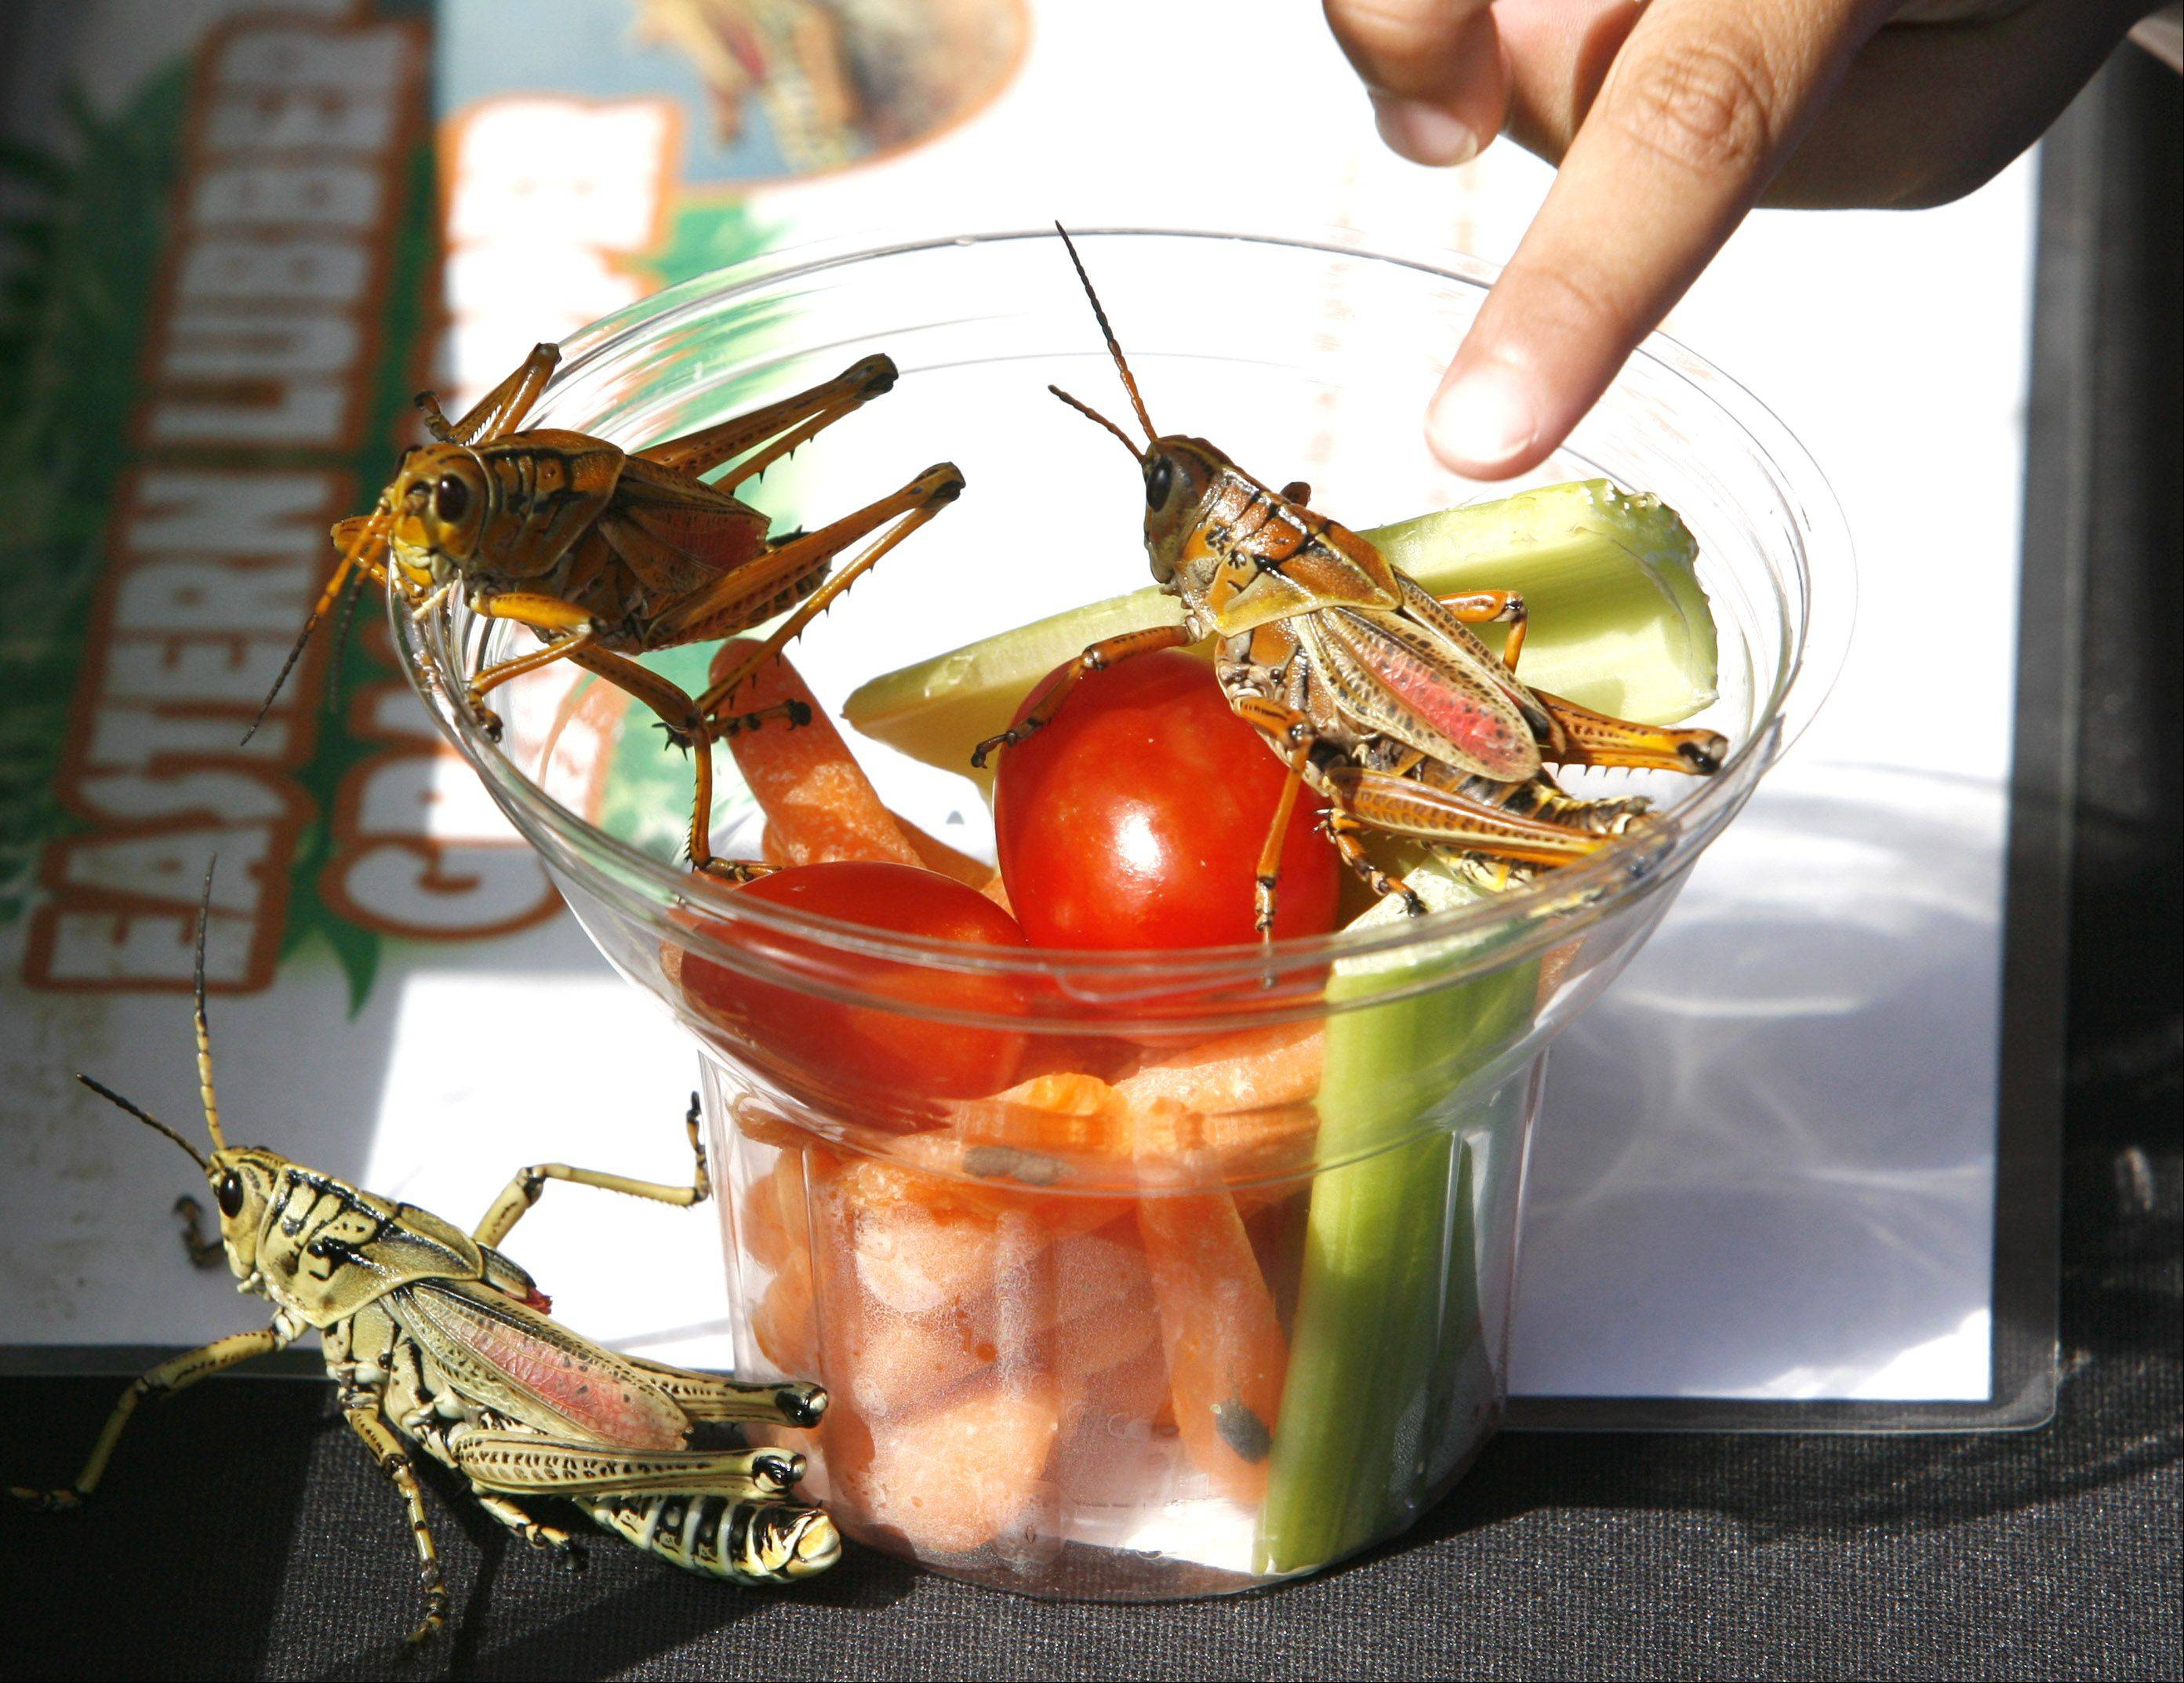 Eastern Lubber grasshoppers from the Florida area are displayed during Bugfest at the Red Oak Nature Center in North Aurora.